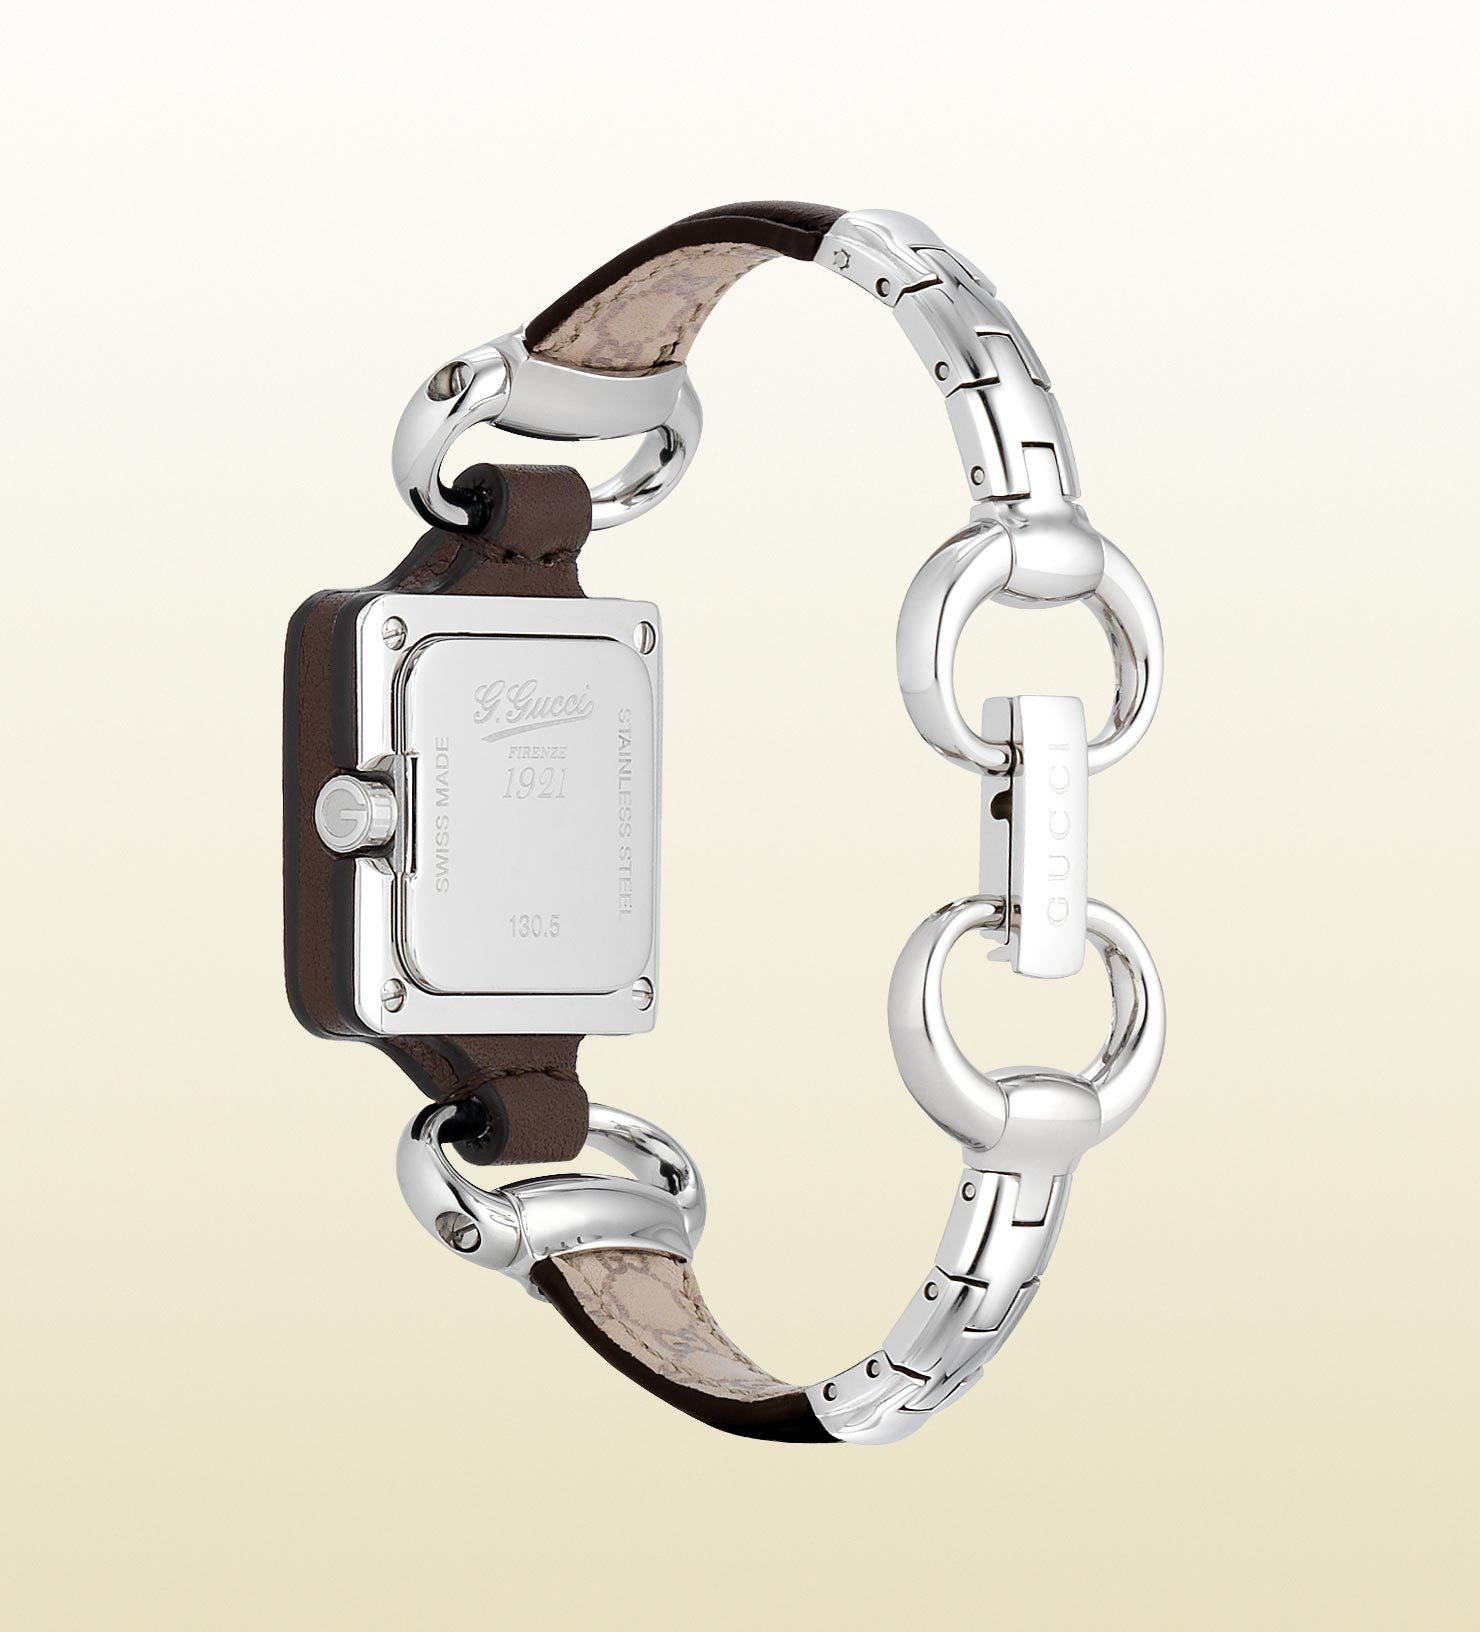 b19ac276da2 ... Gucci 1921 Special Edition Stainless Steel and Leather YA130403 (25mm)